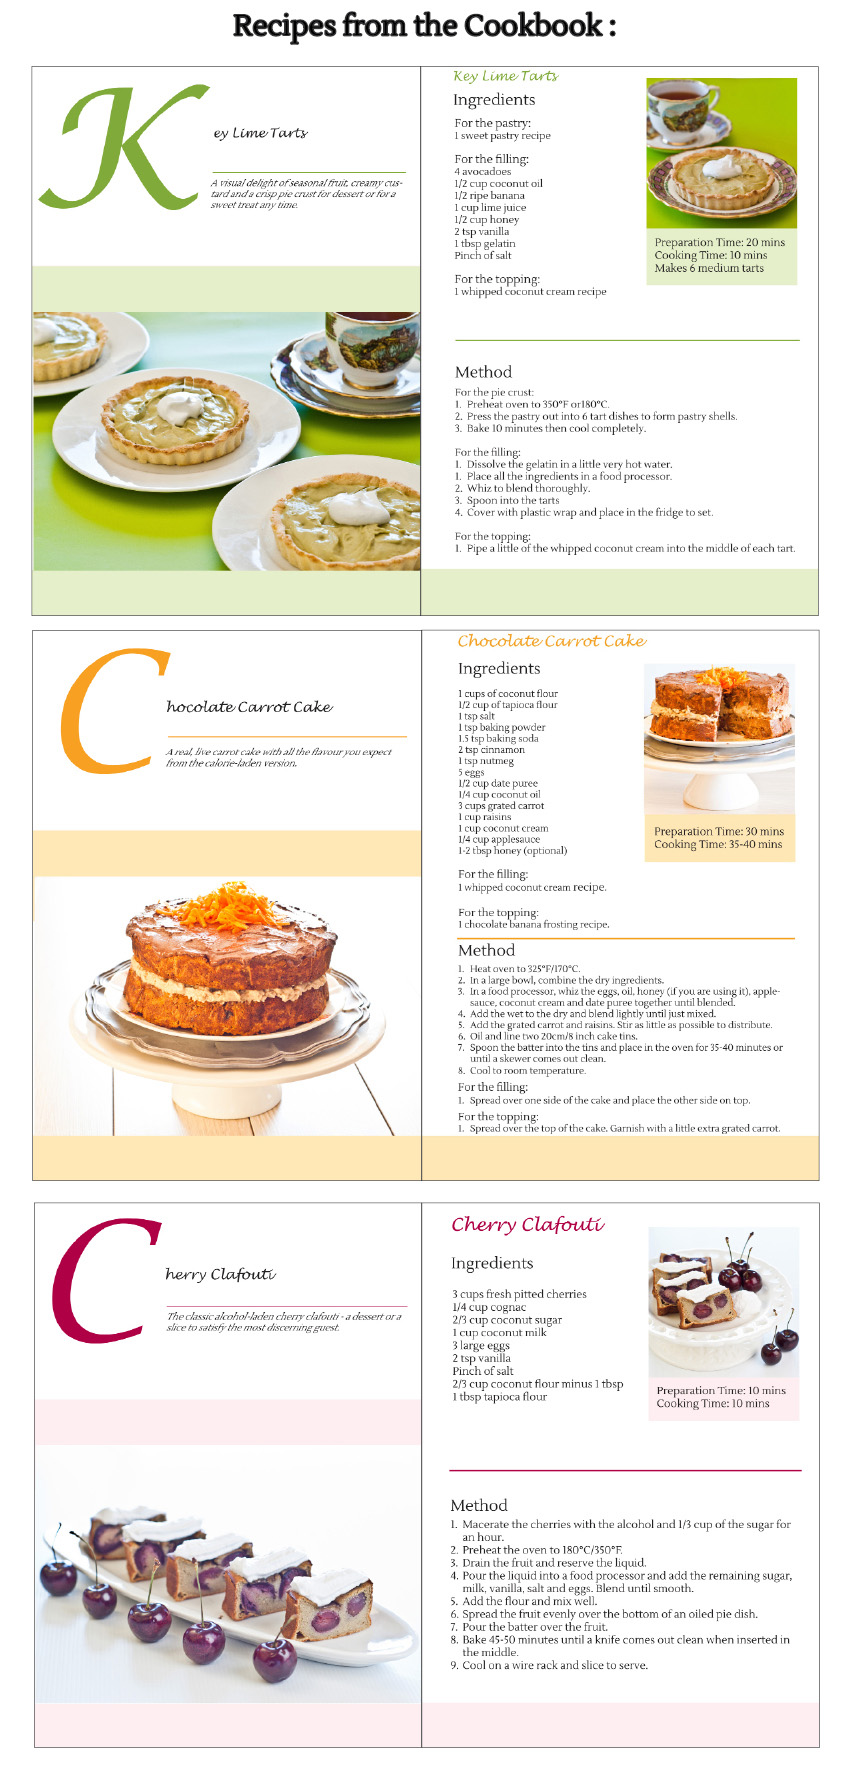 Afternoon Tea - cookbook for food intolerances - gluten-free, grain-free, dairy-free, nut-free, refined sugar-free